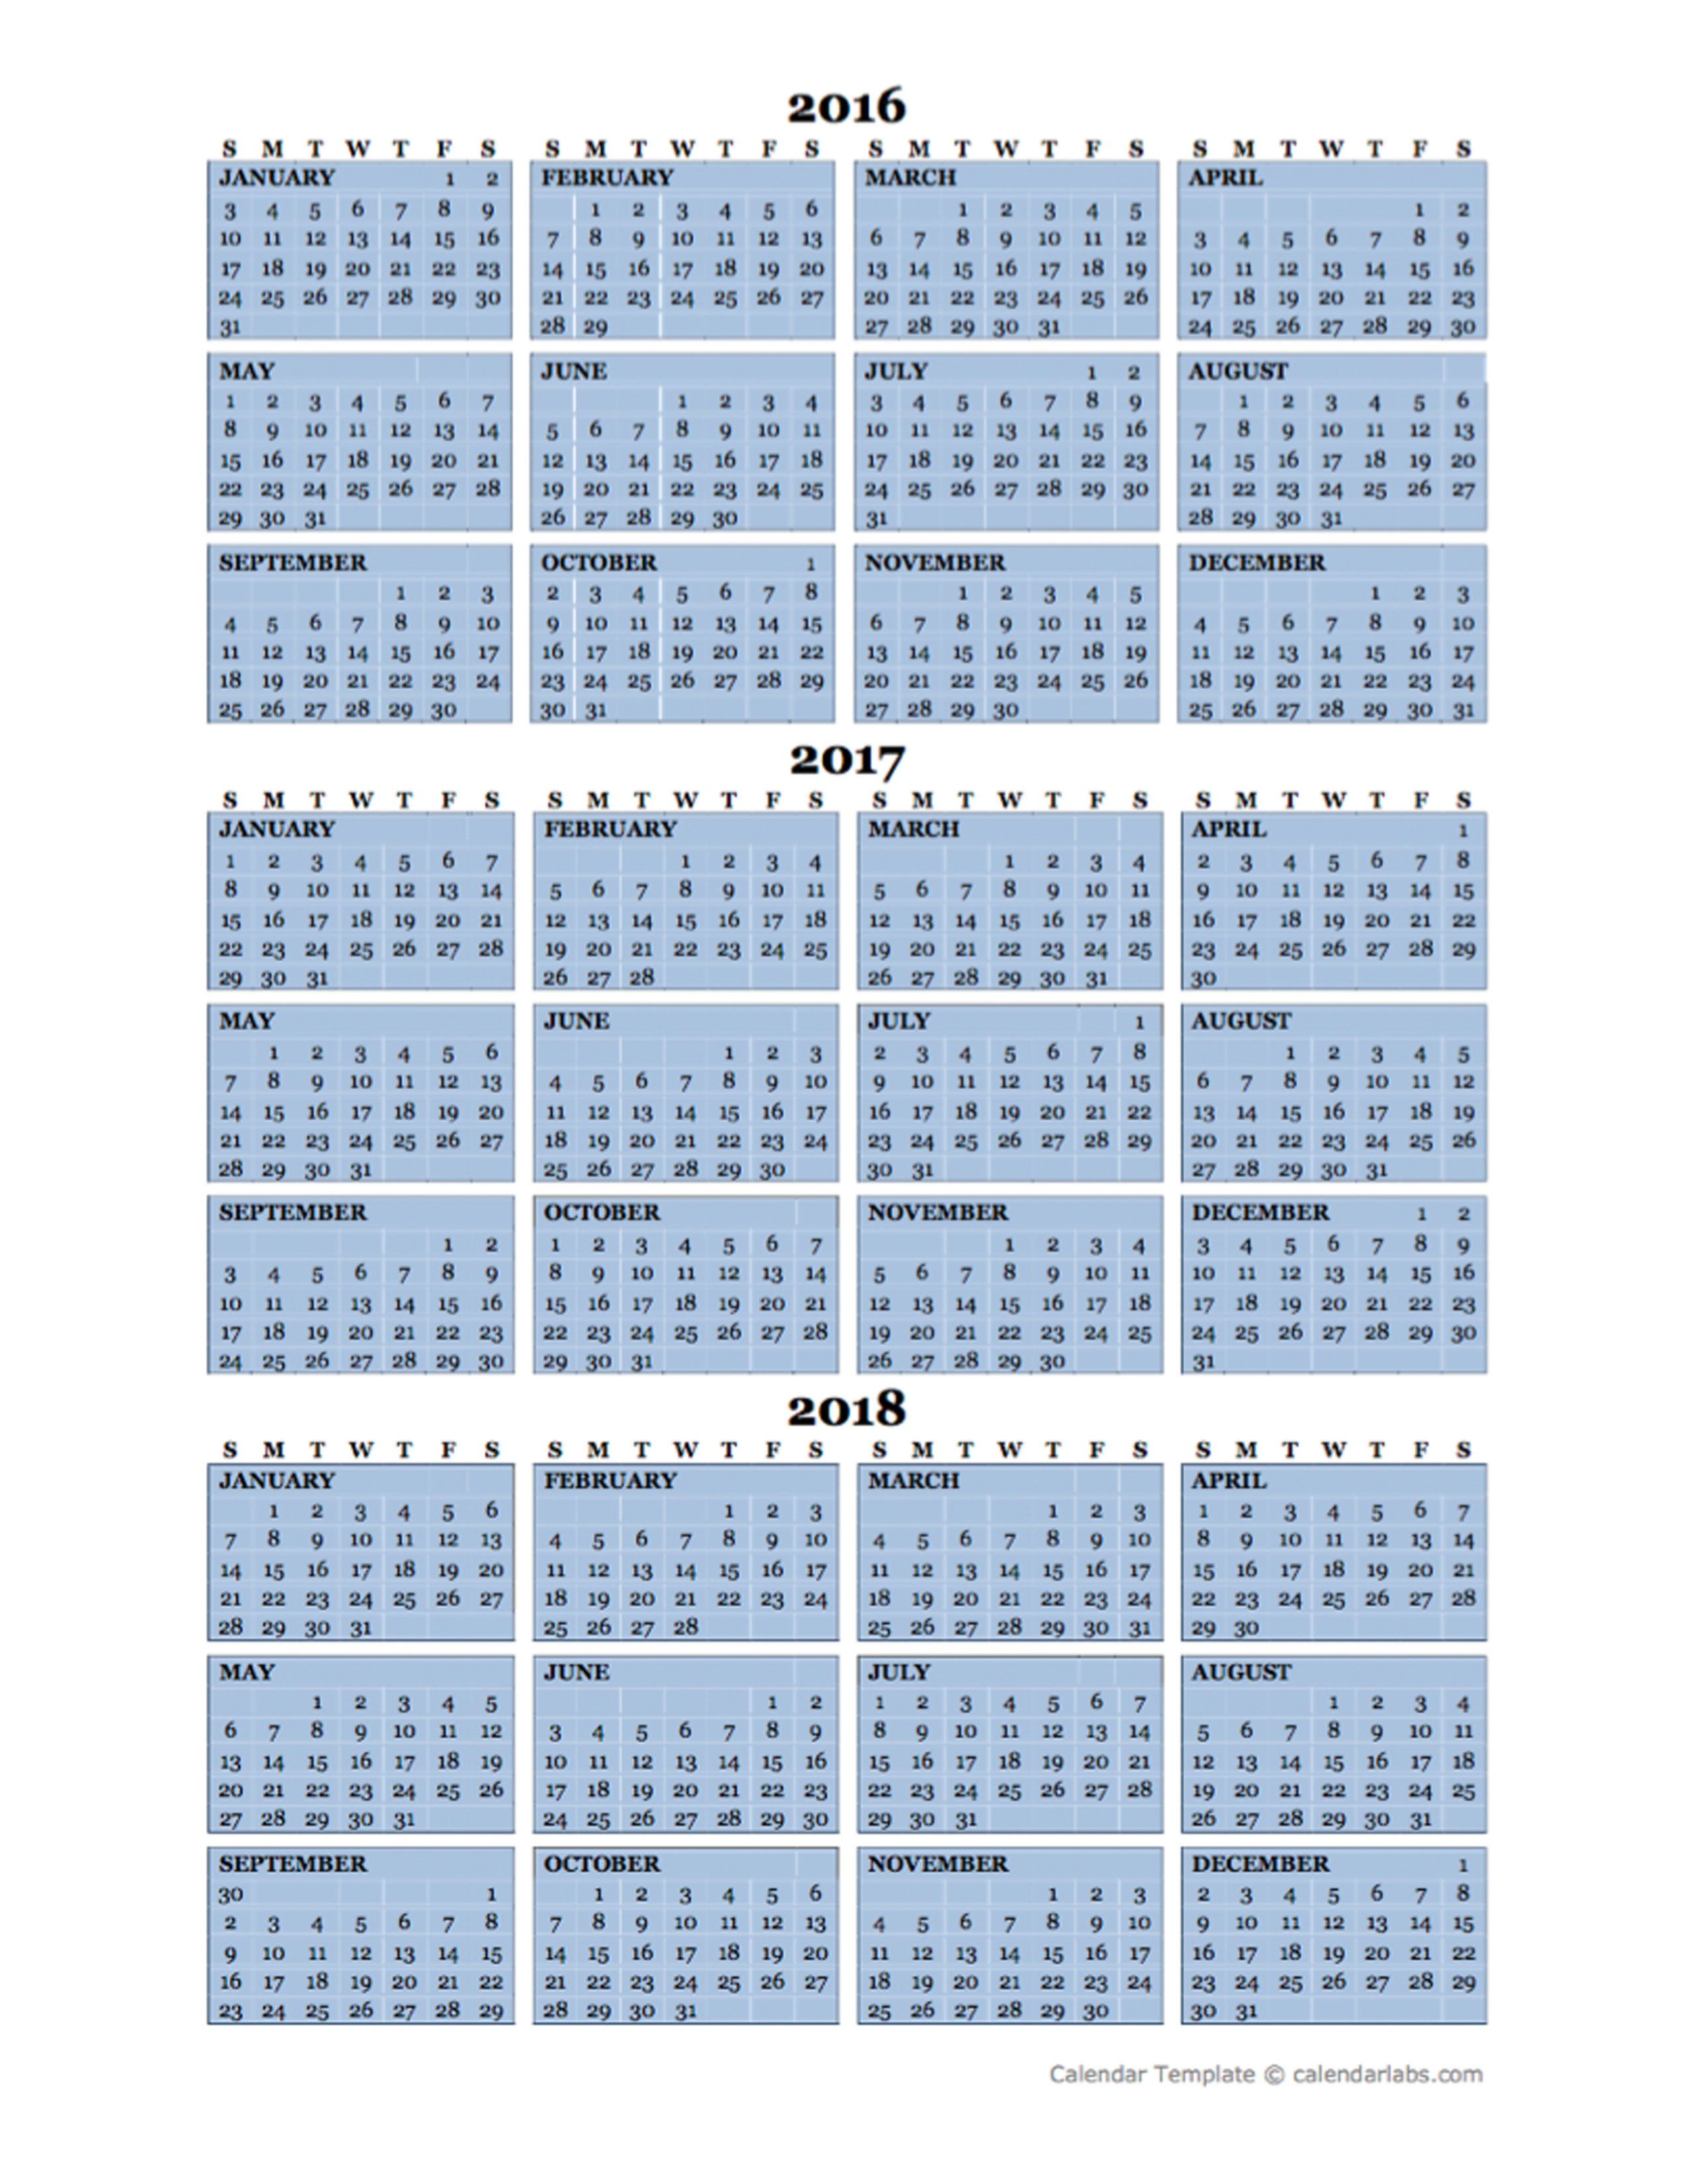 Three Year Calendar Template 2016 to 2018 - Free Printable Templates